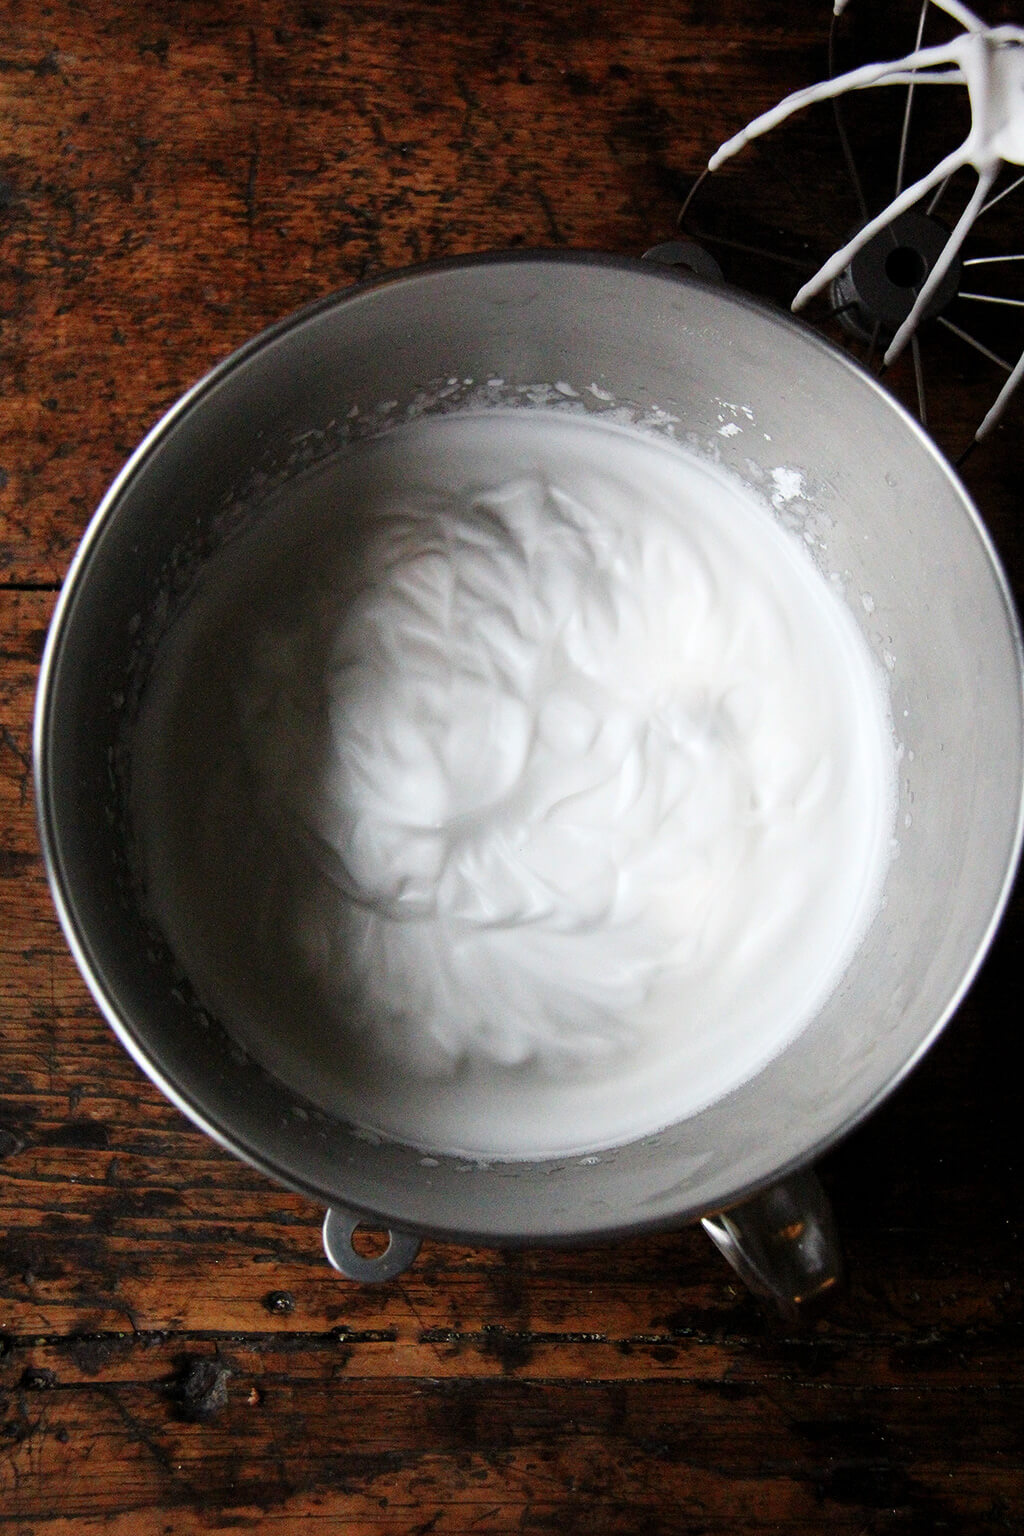 The bowl of a stand mixer filled with whipped aquafaba.